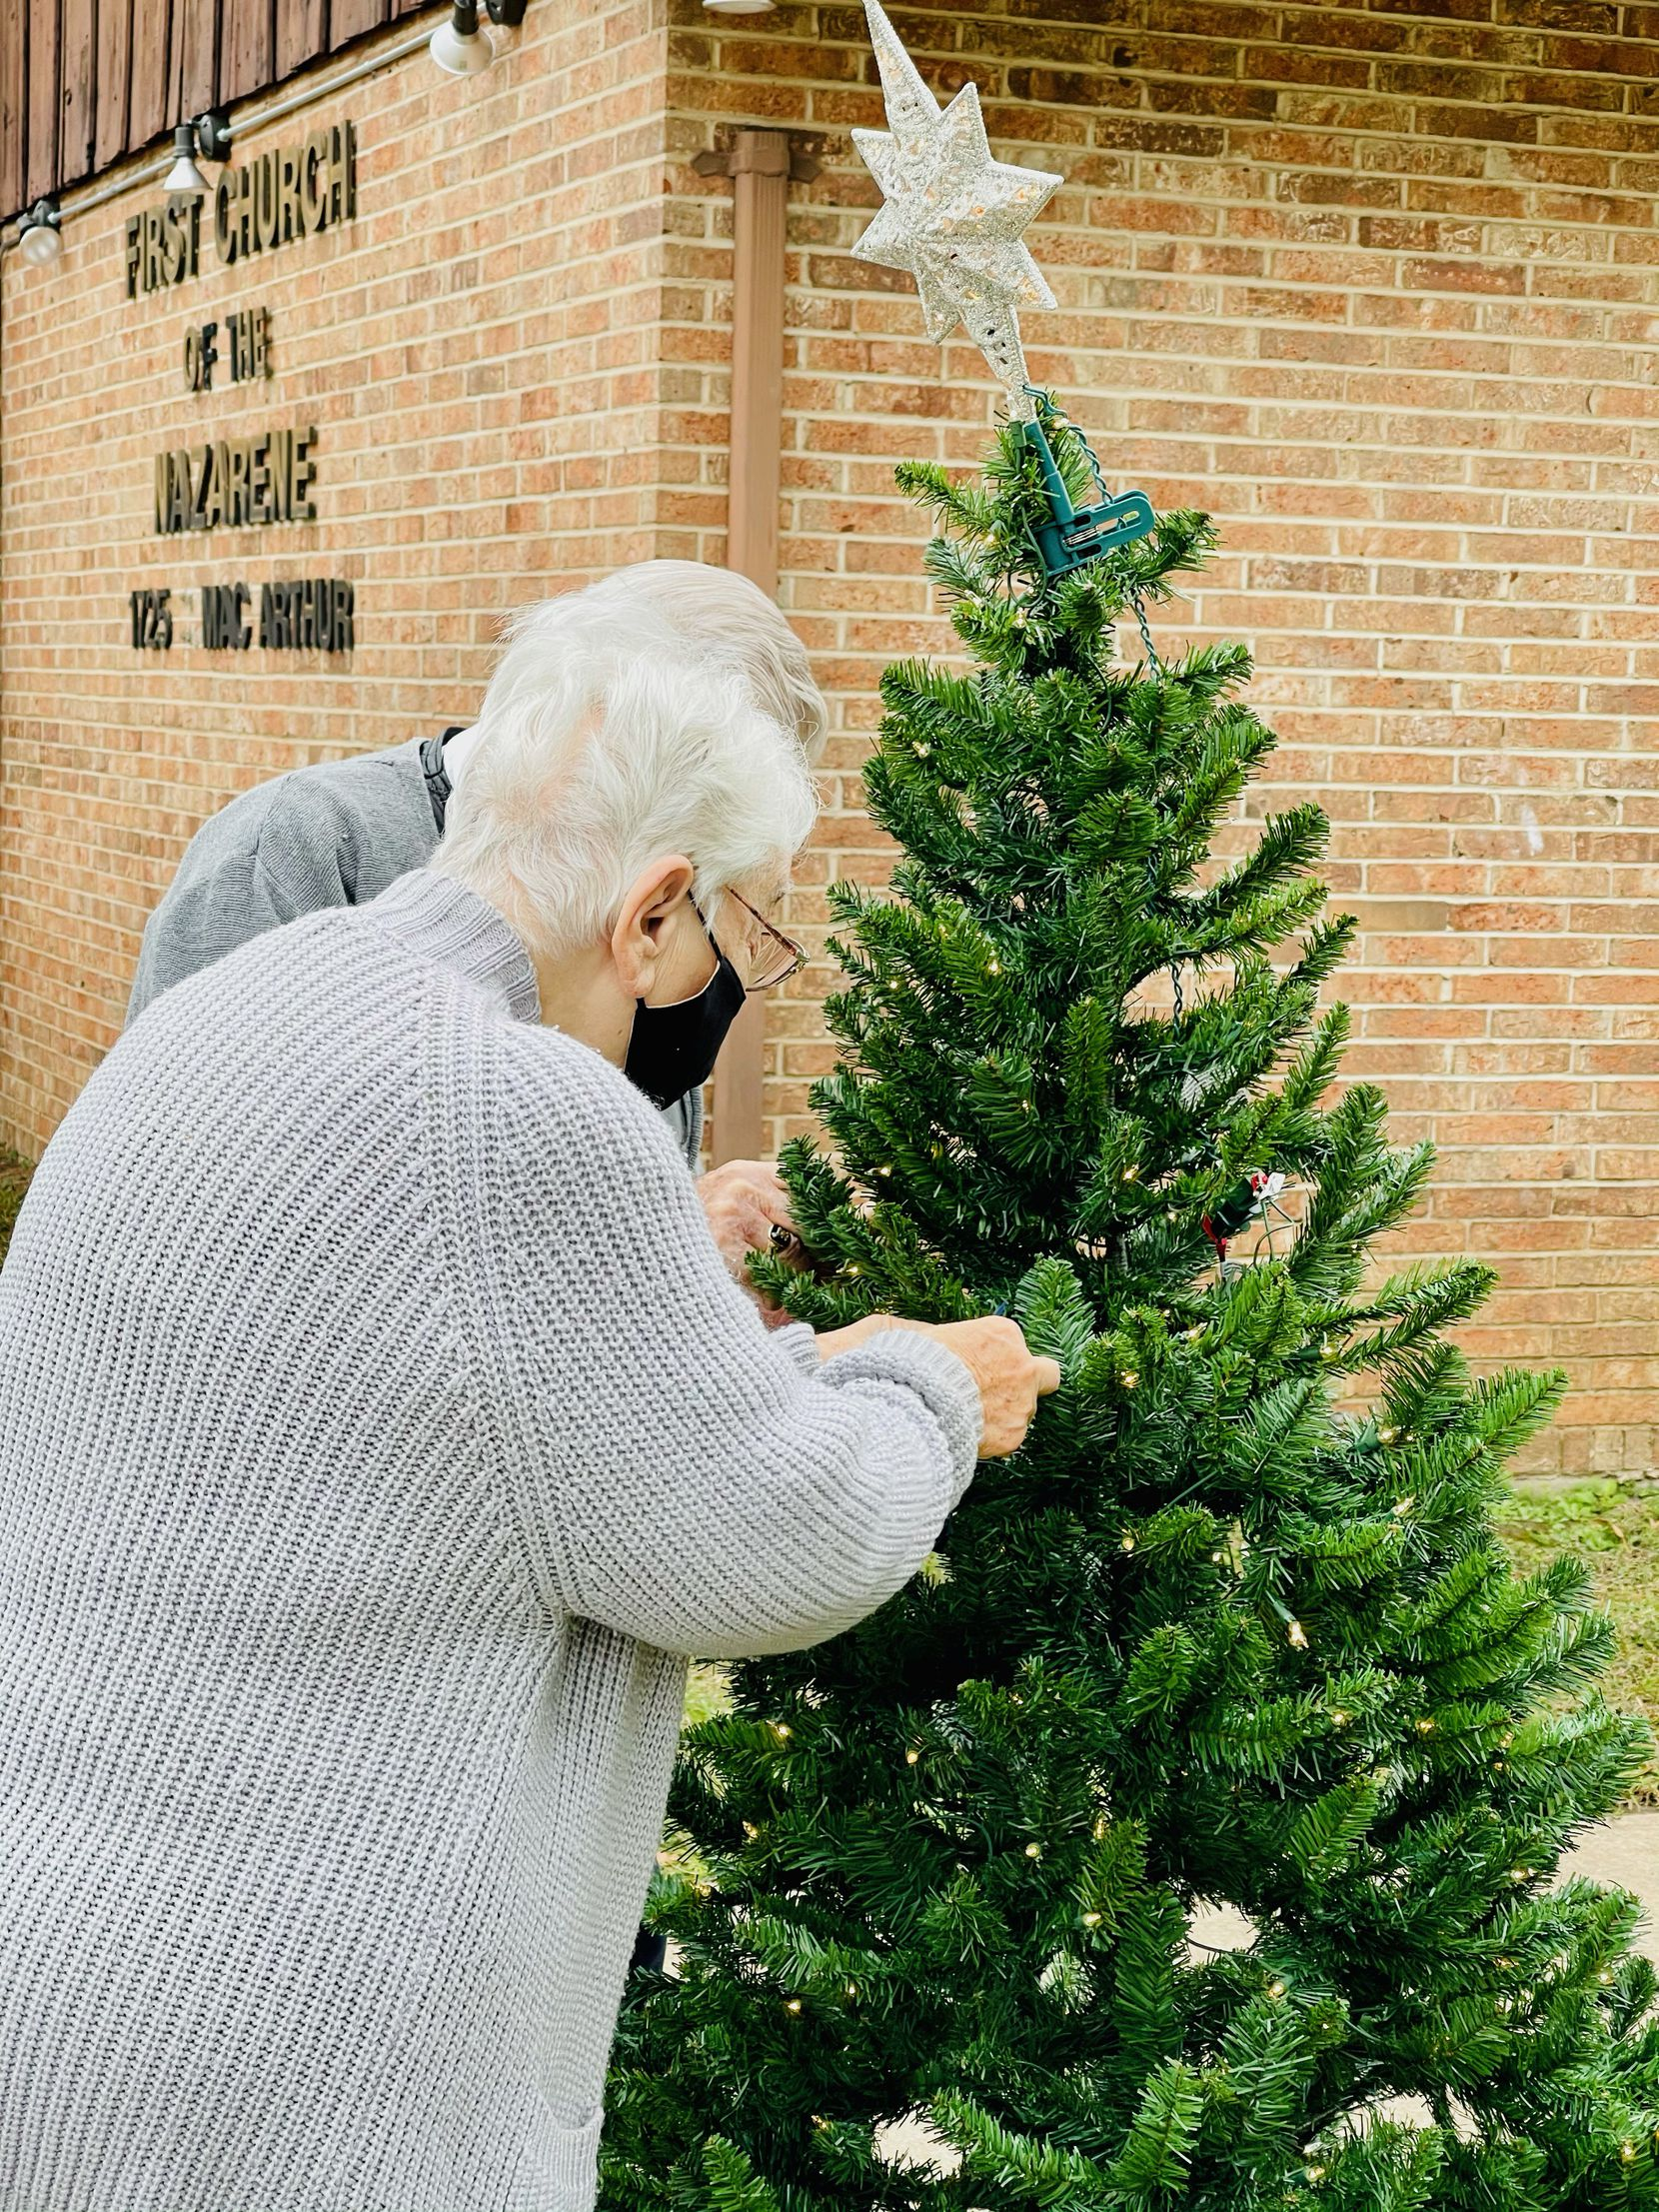 Visitors hang ornaments from trees outside Irving First Church of the Nazarene.